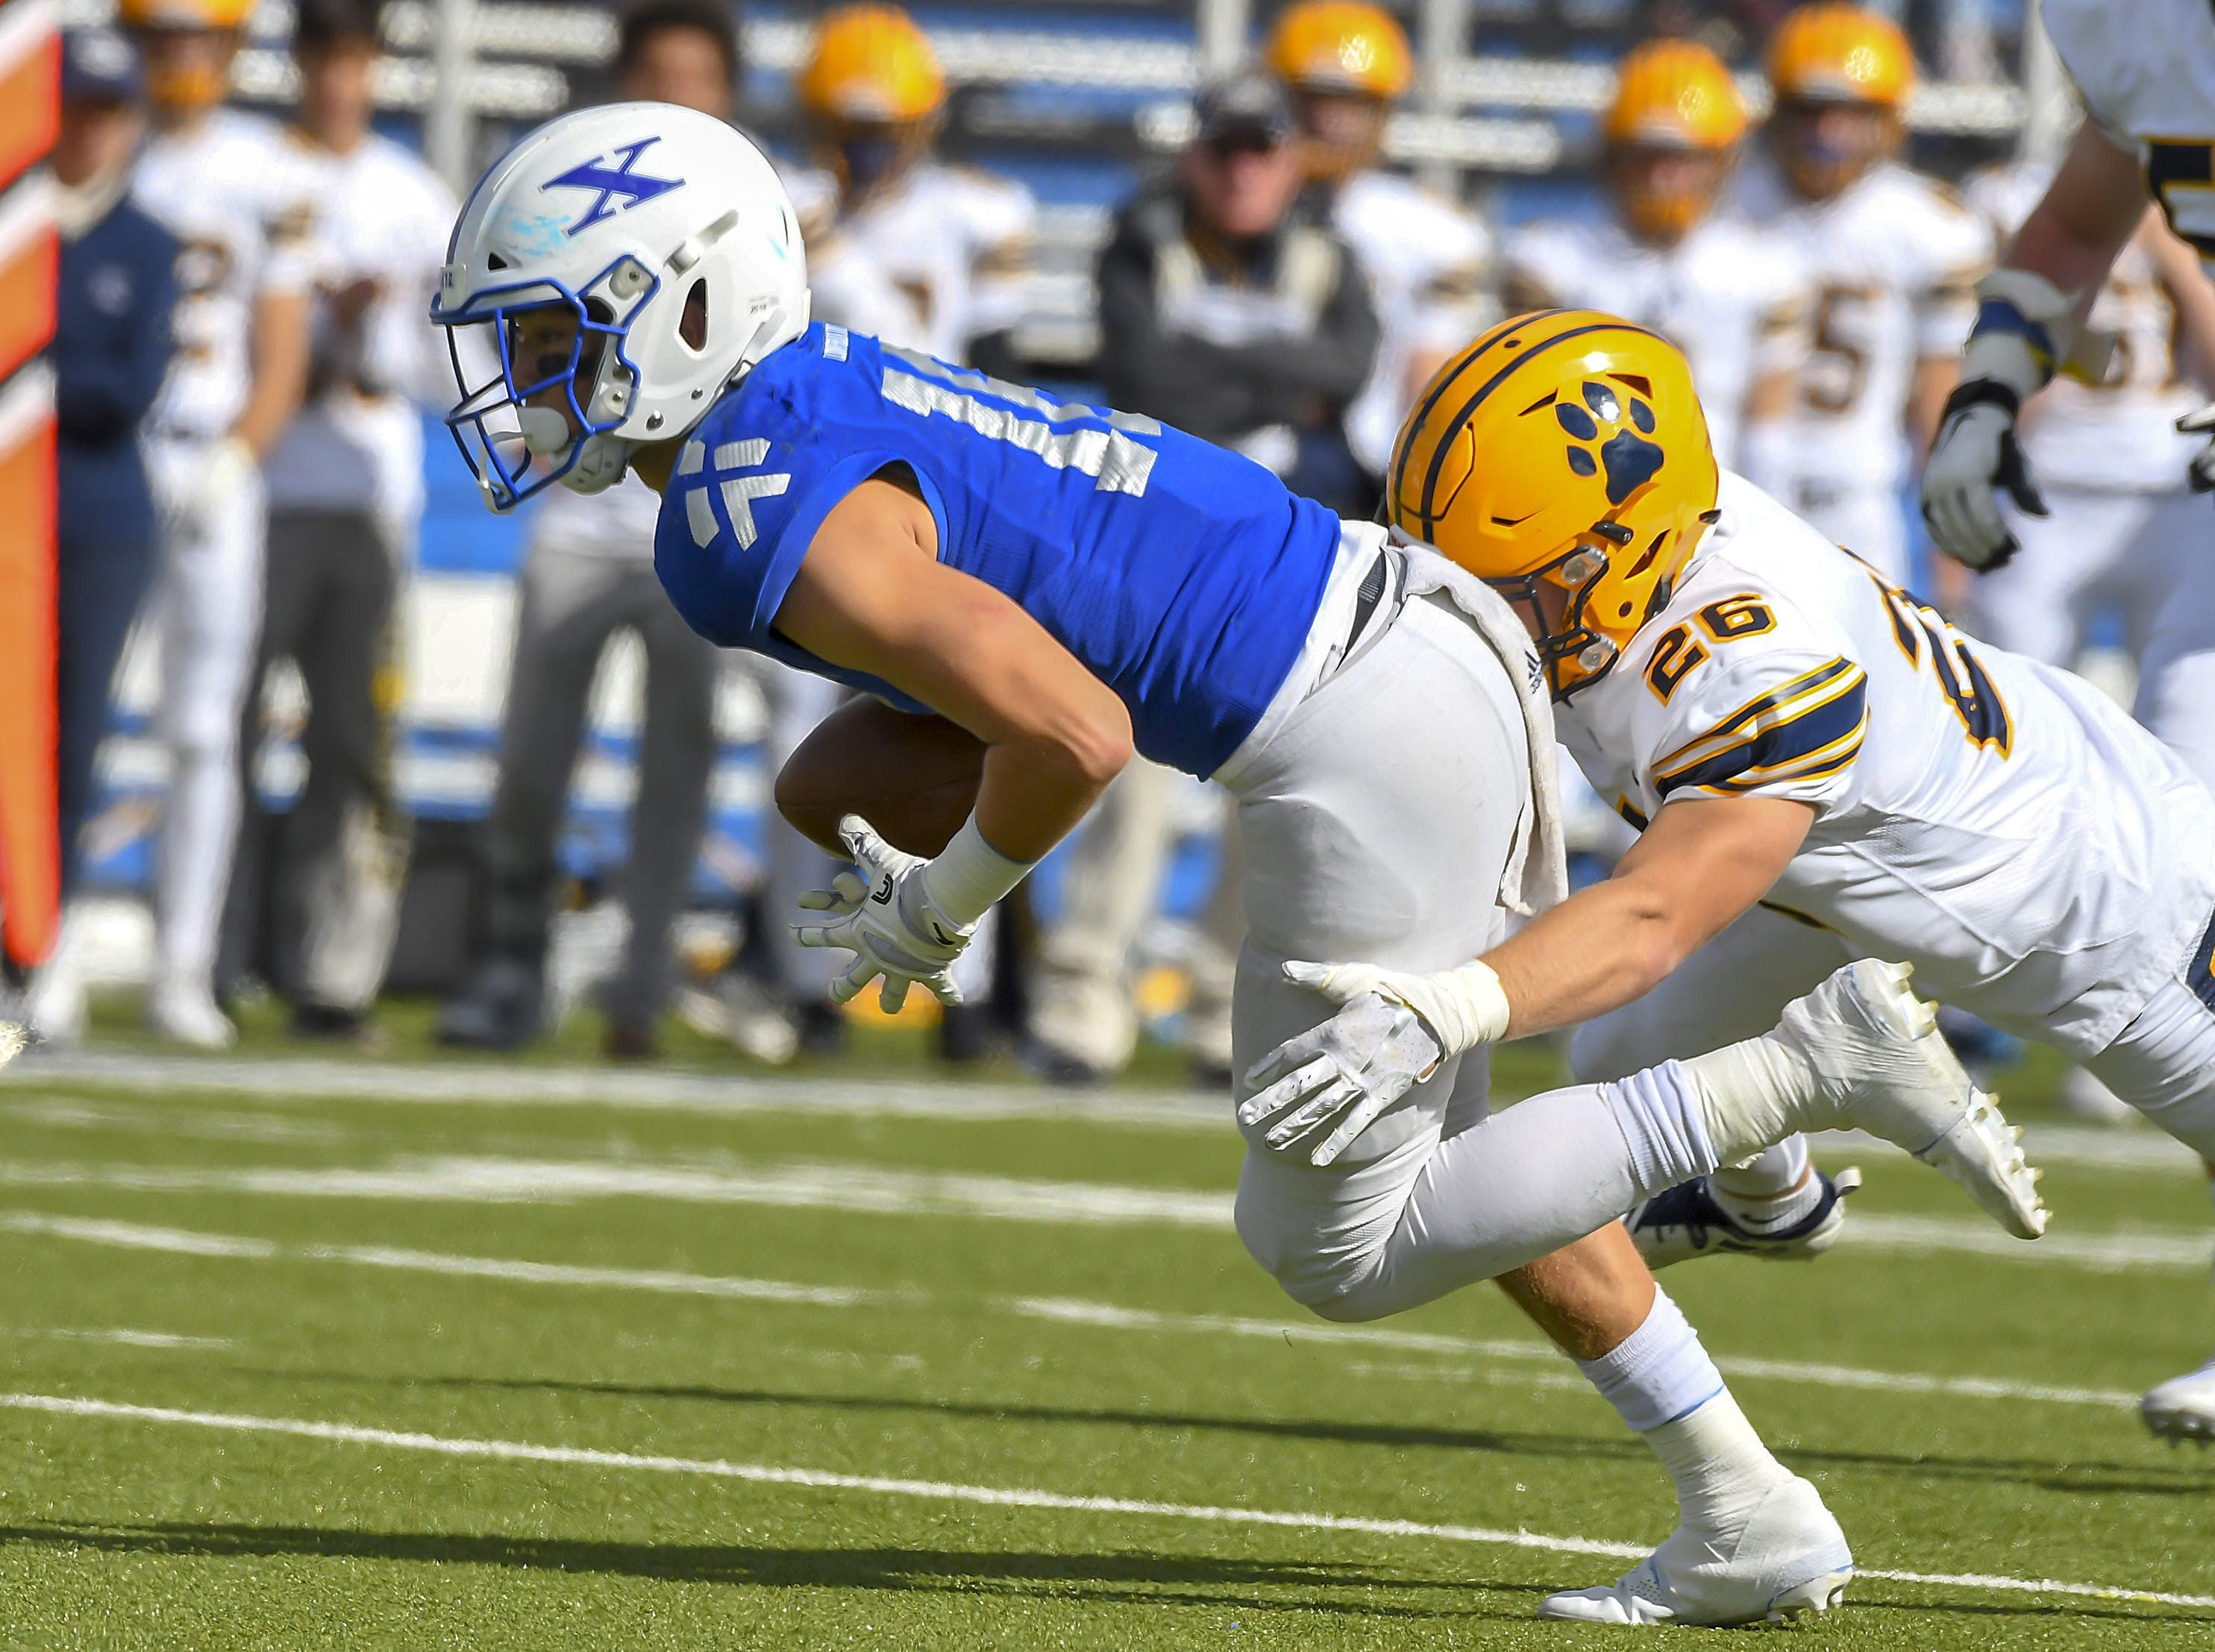 Nathan Stockman of St. X is tackled by a St. I's defender at St. Xavier High School, Saturday, October, 20 2018